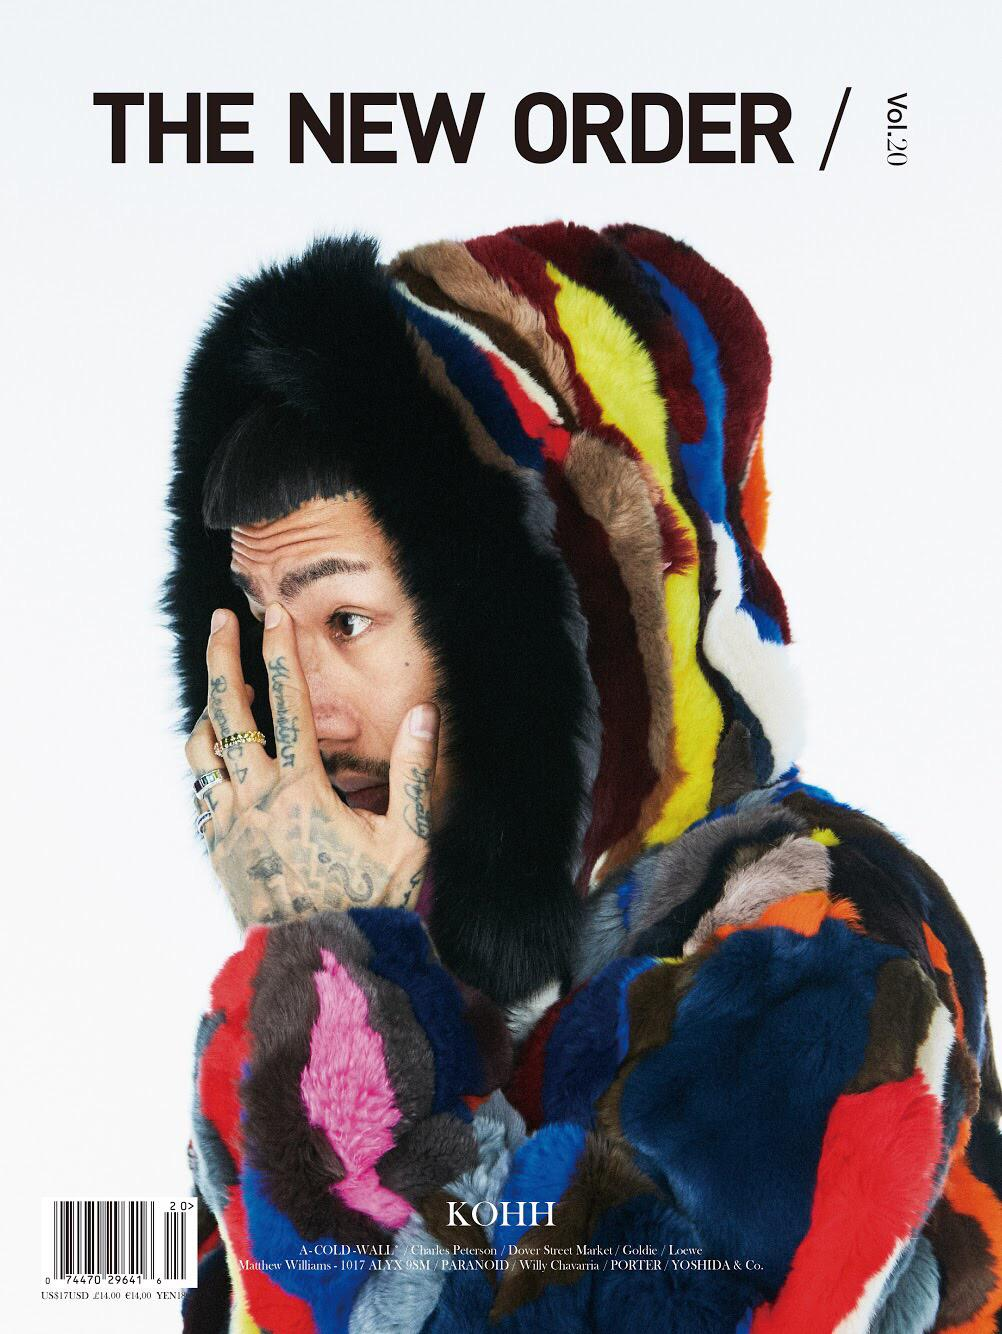 Kohh shot by Rintaro Ishige /